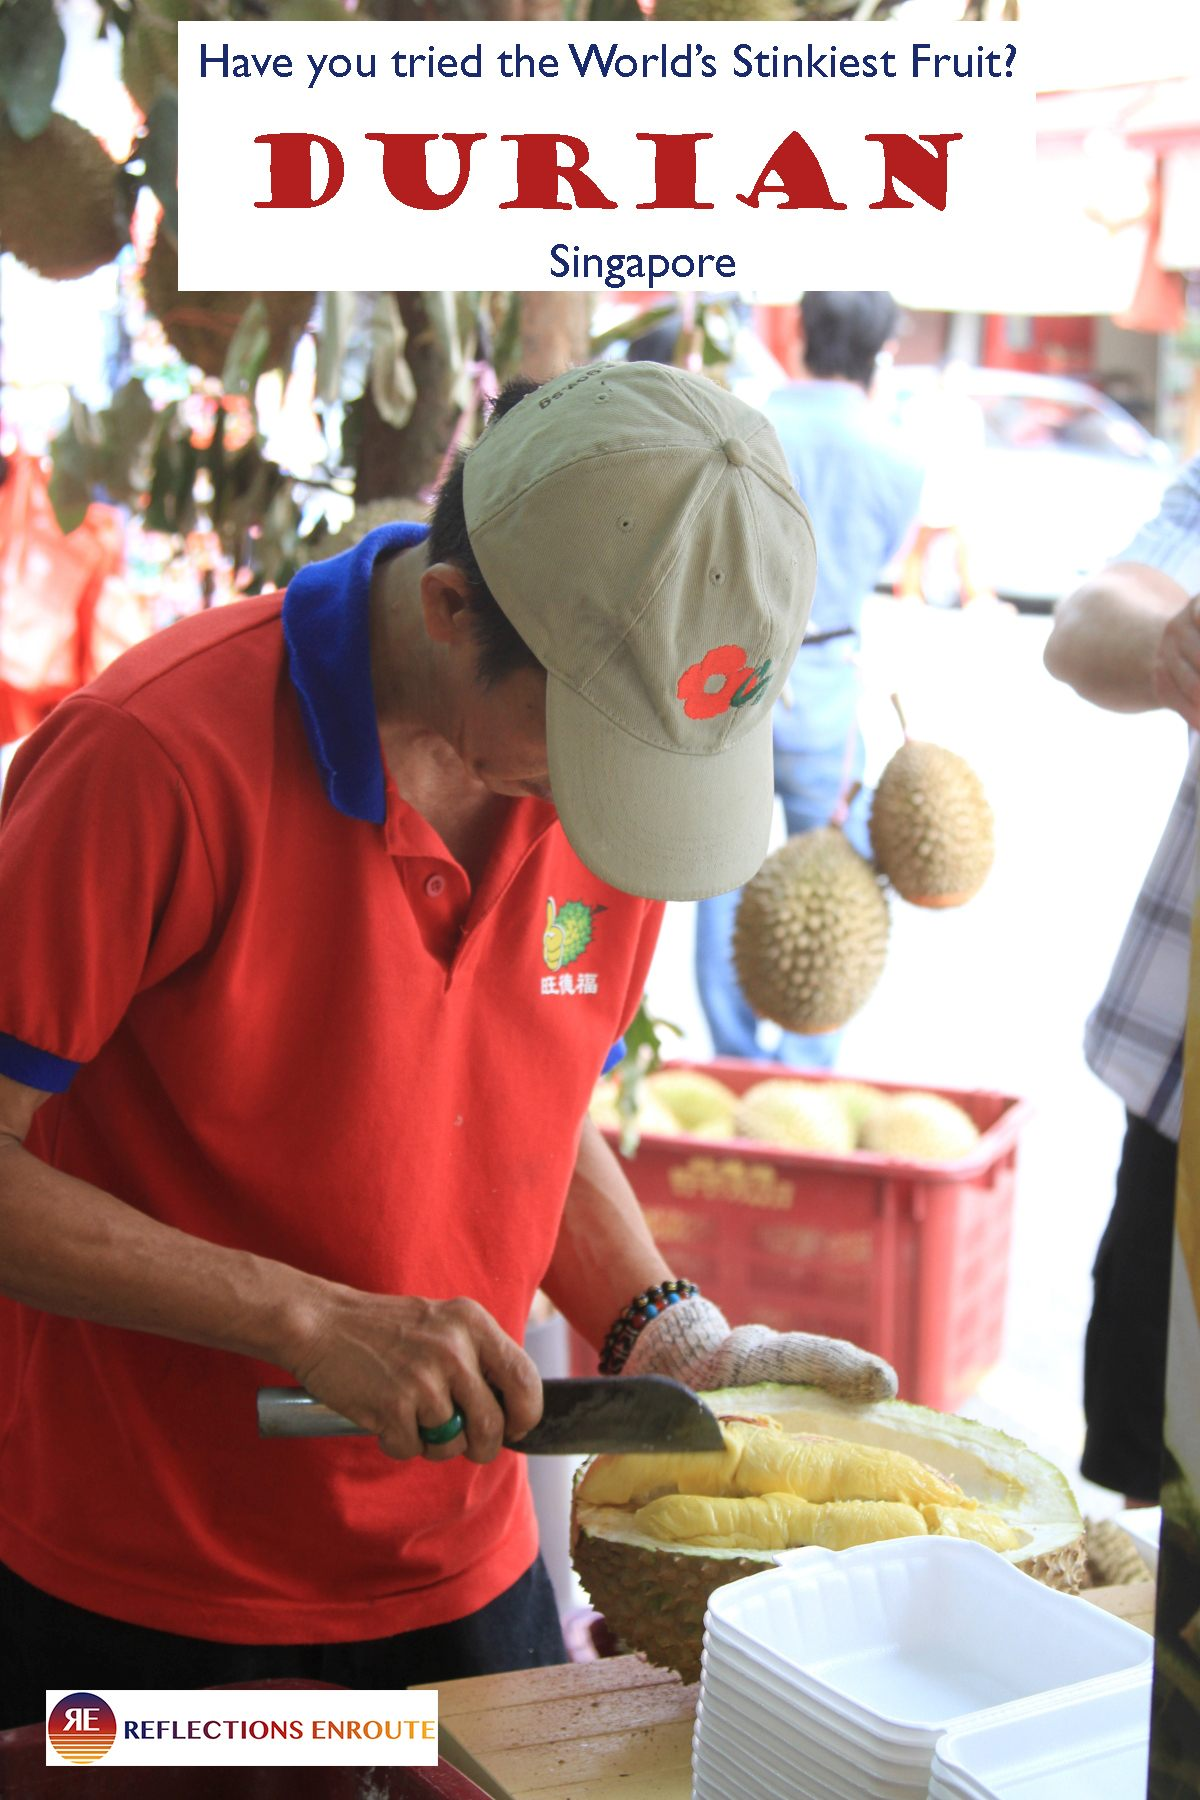 Do you love fresh fruit? How about trying new foods? Then when in Asia, you must try the King of Fruit - Durian! data-pin-url=